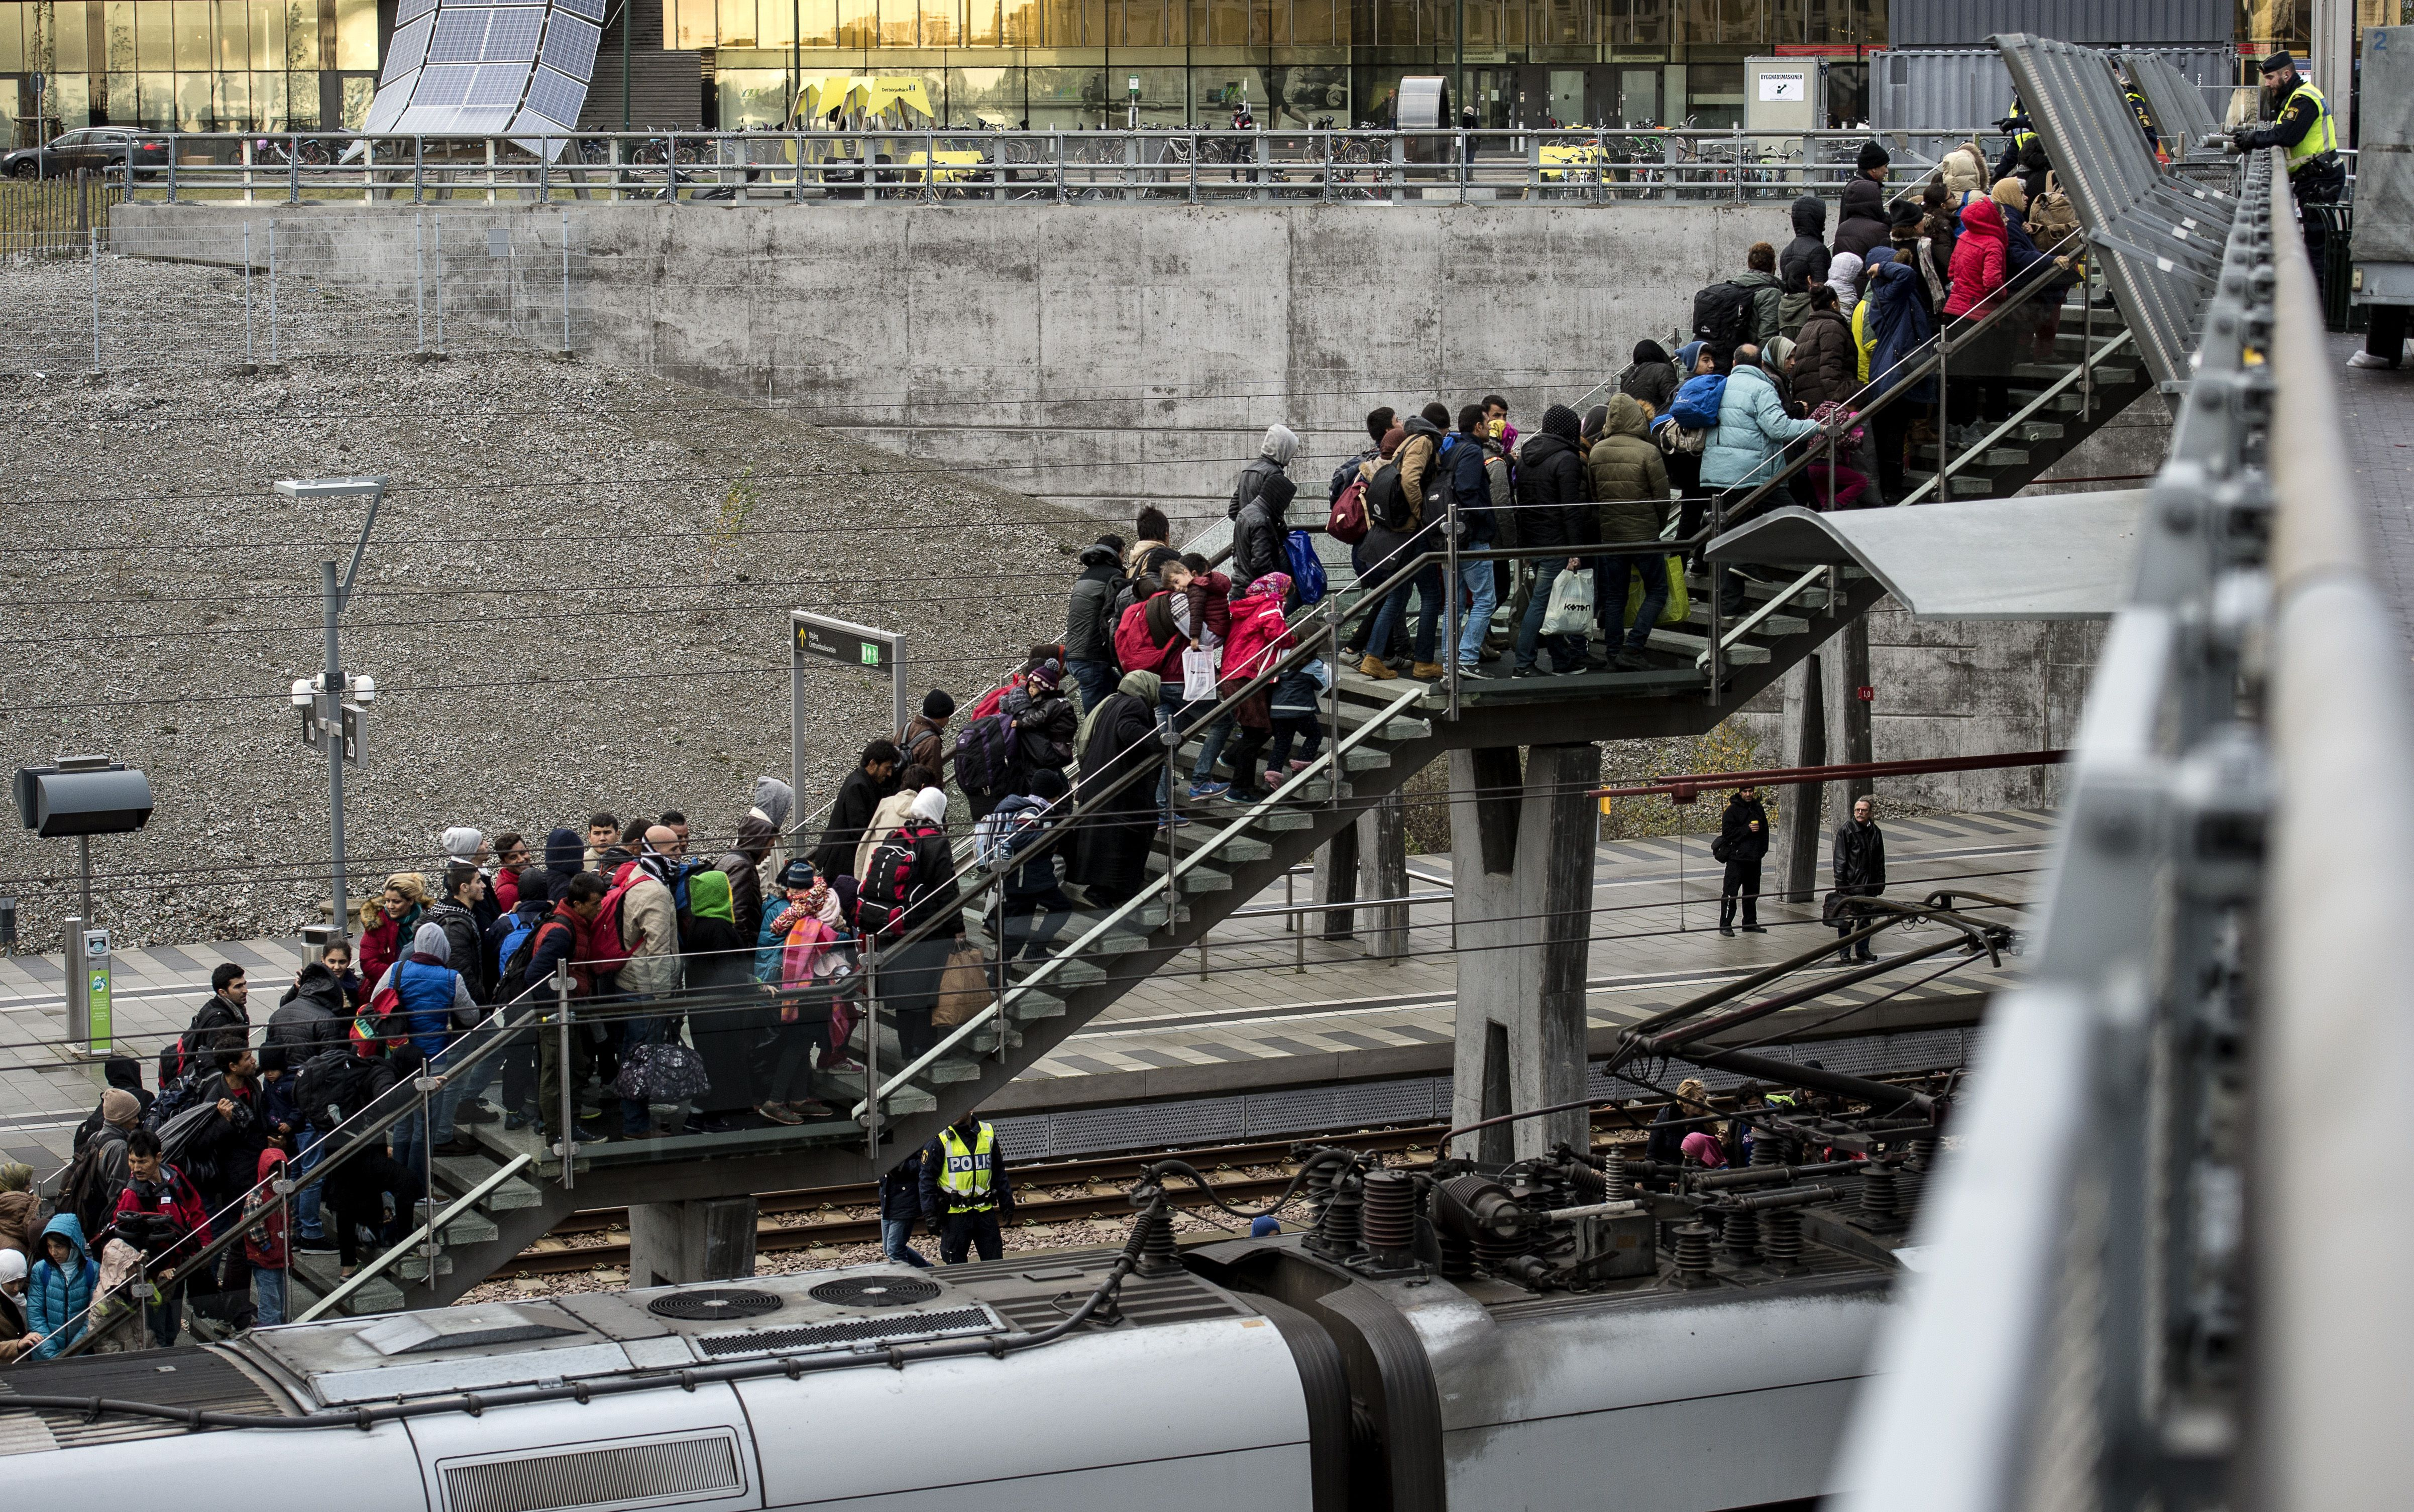 Police organize the line of refugees on the stairway leading up from the trains arriving from Denmark on Nov. 19, 2015